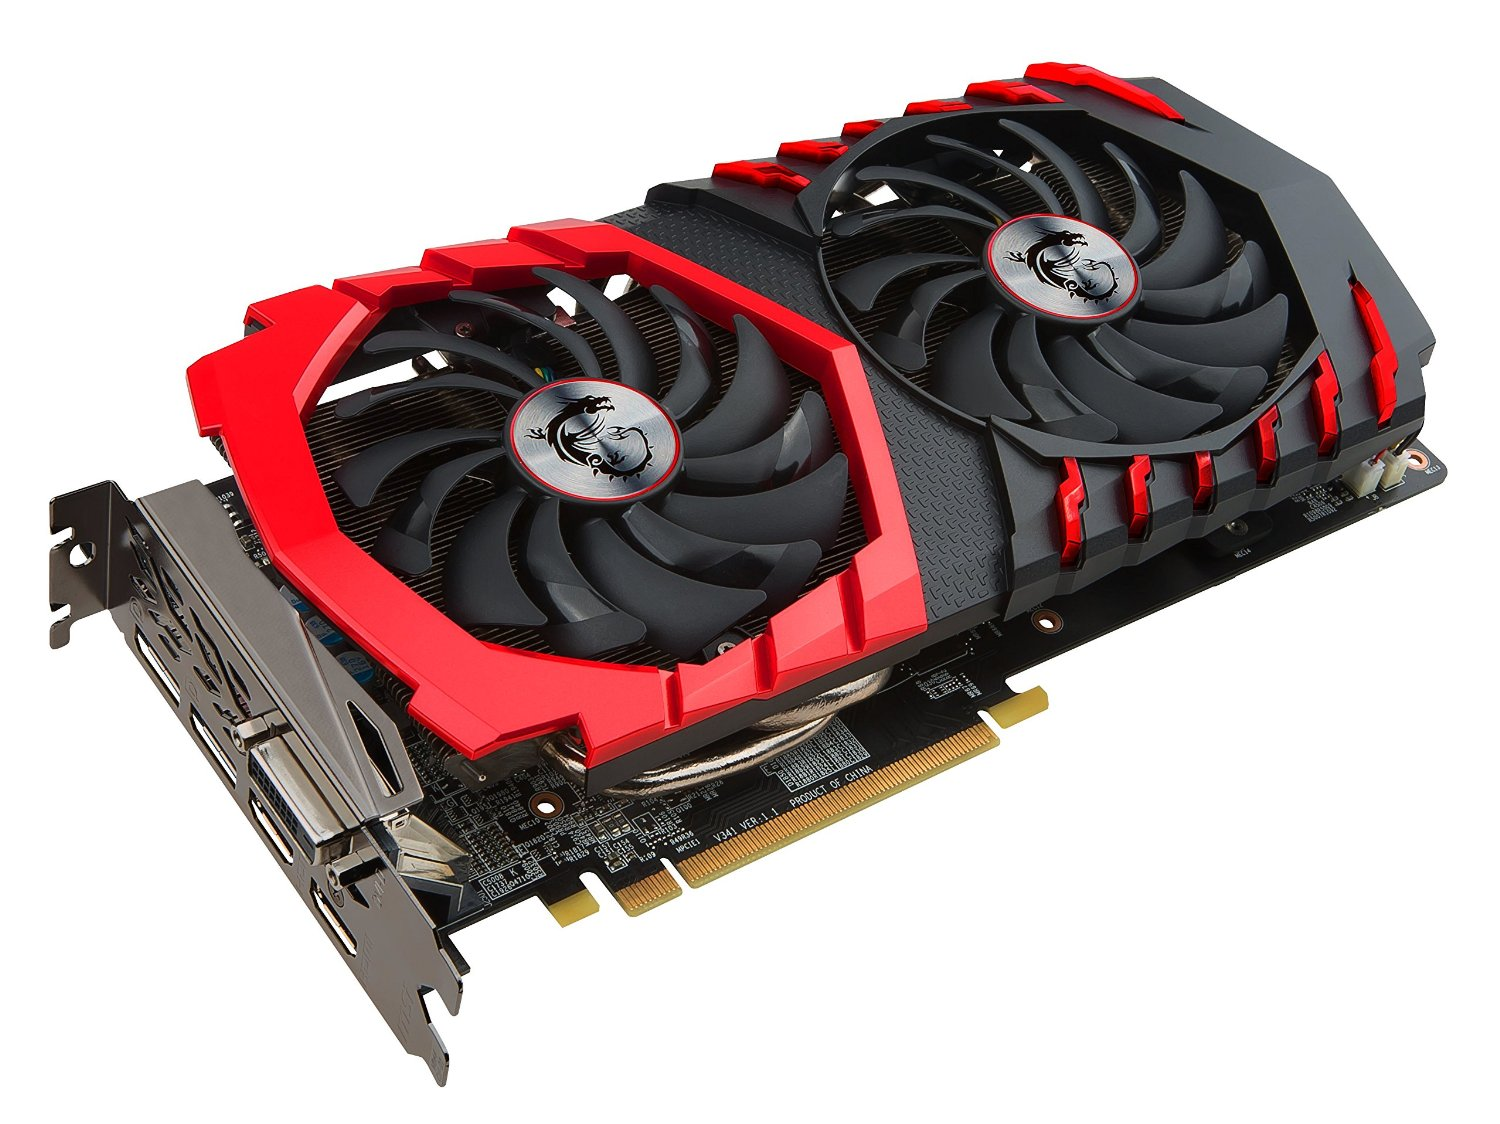 MSI GAMING RX 470 4GB